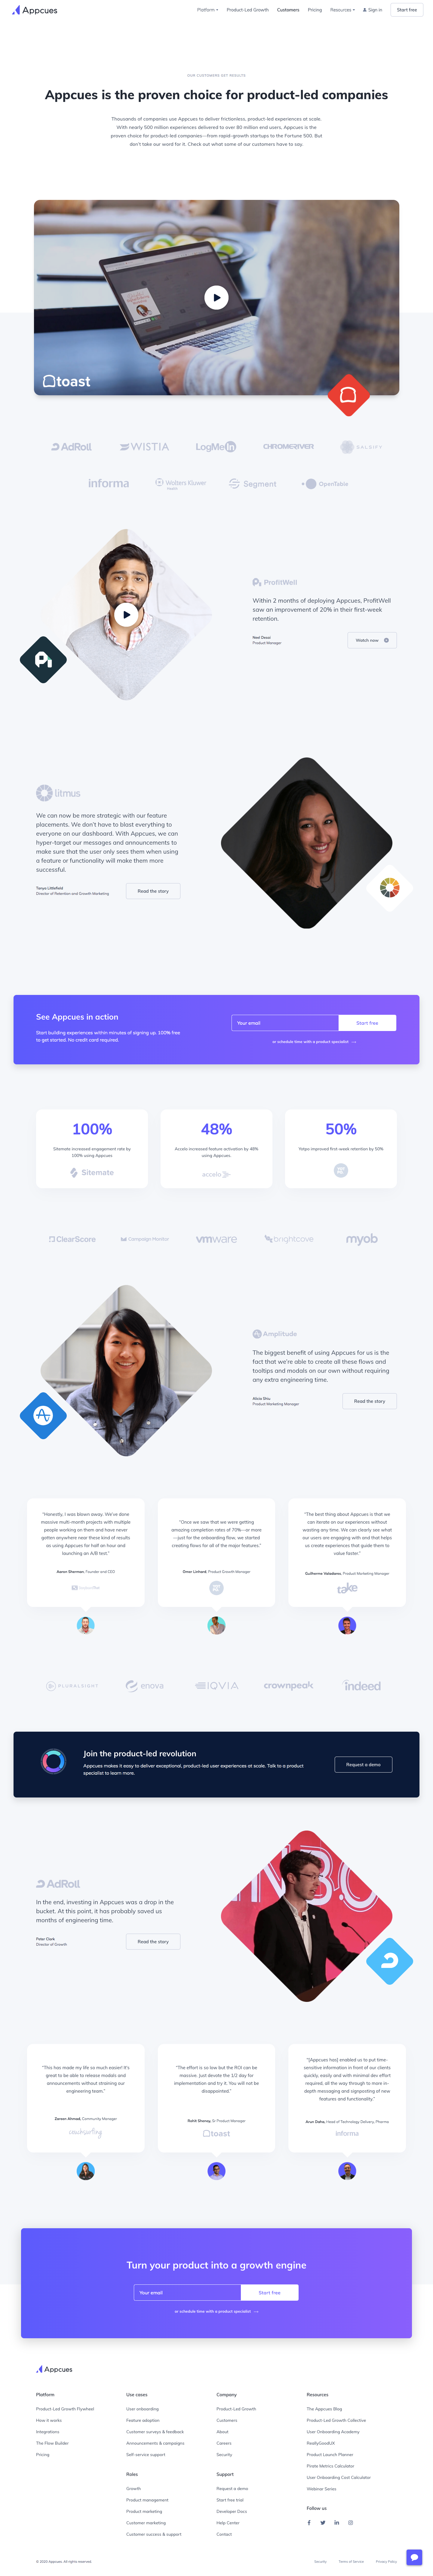 Appcues Customers Page